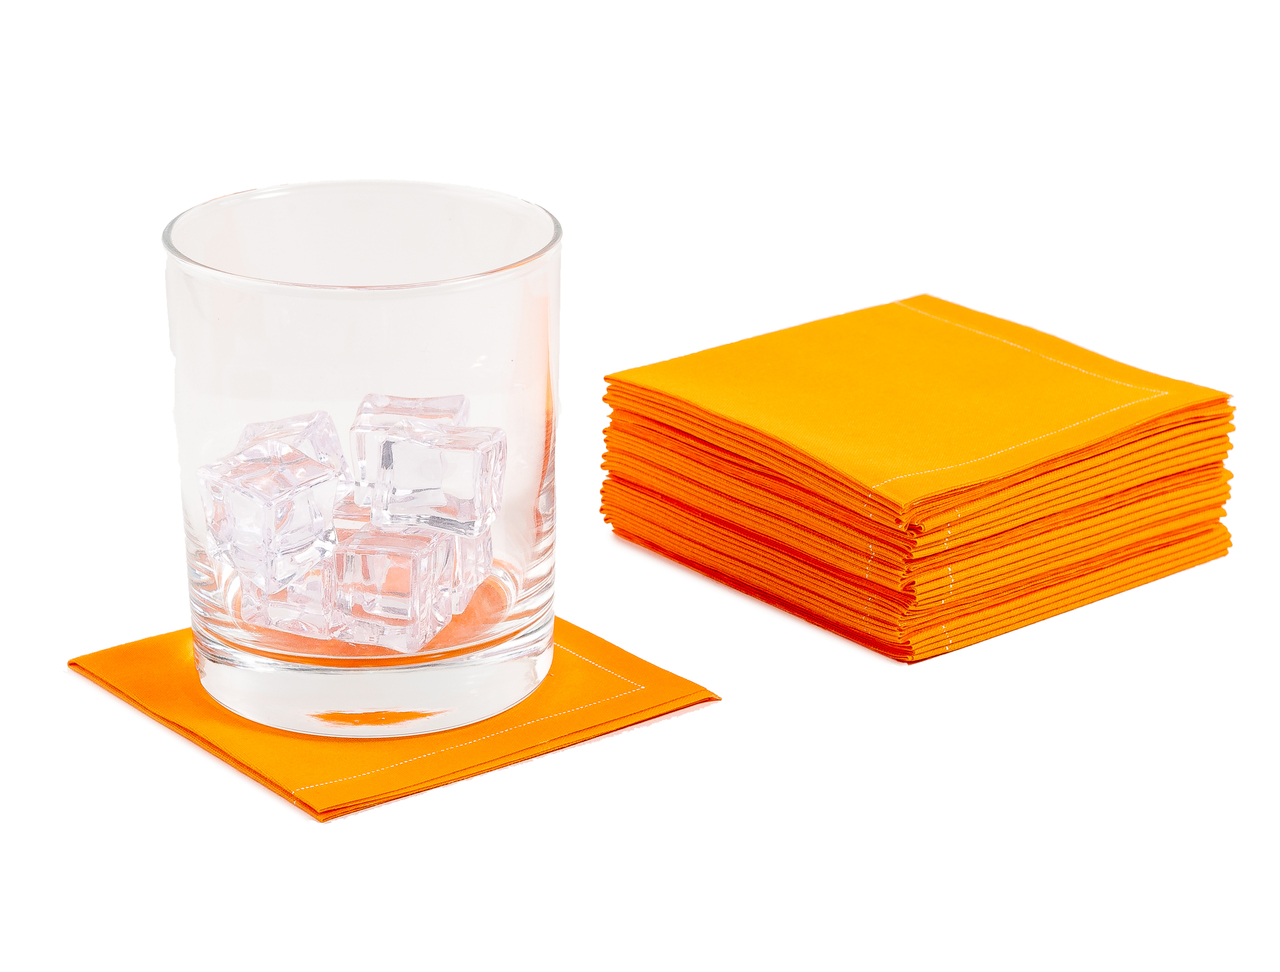 "Persimmon Cotton 1/4 Fold Cocktail (140 GSM) - 8"" x 8"" (folded 4"" x 4"") - 600 units"